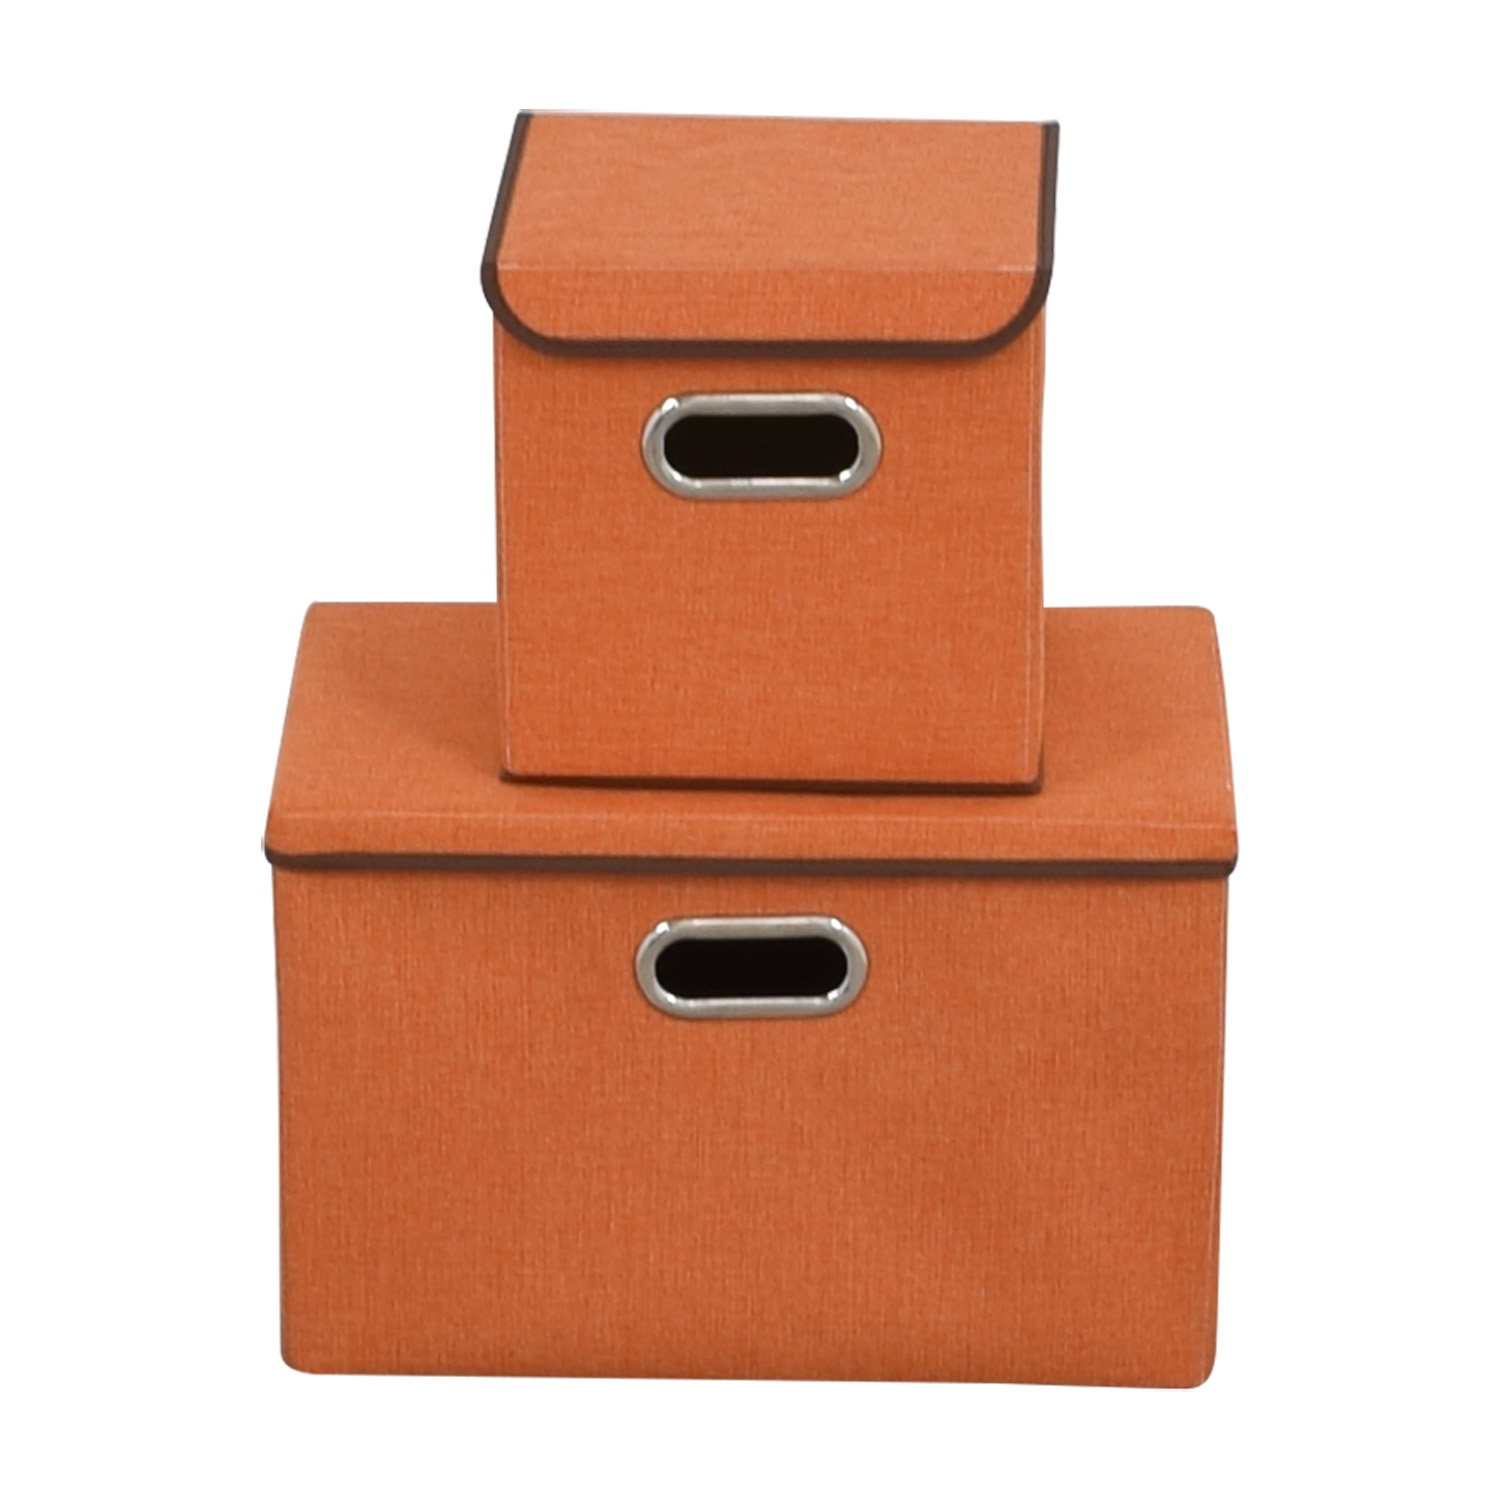 IBTHOUSE IBTHOUSE Storage Bins discount